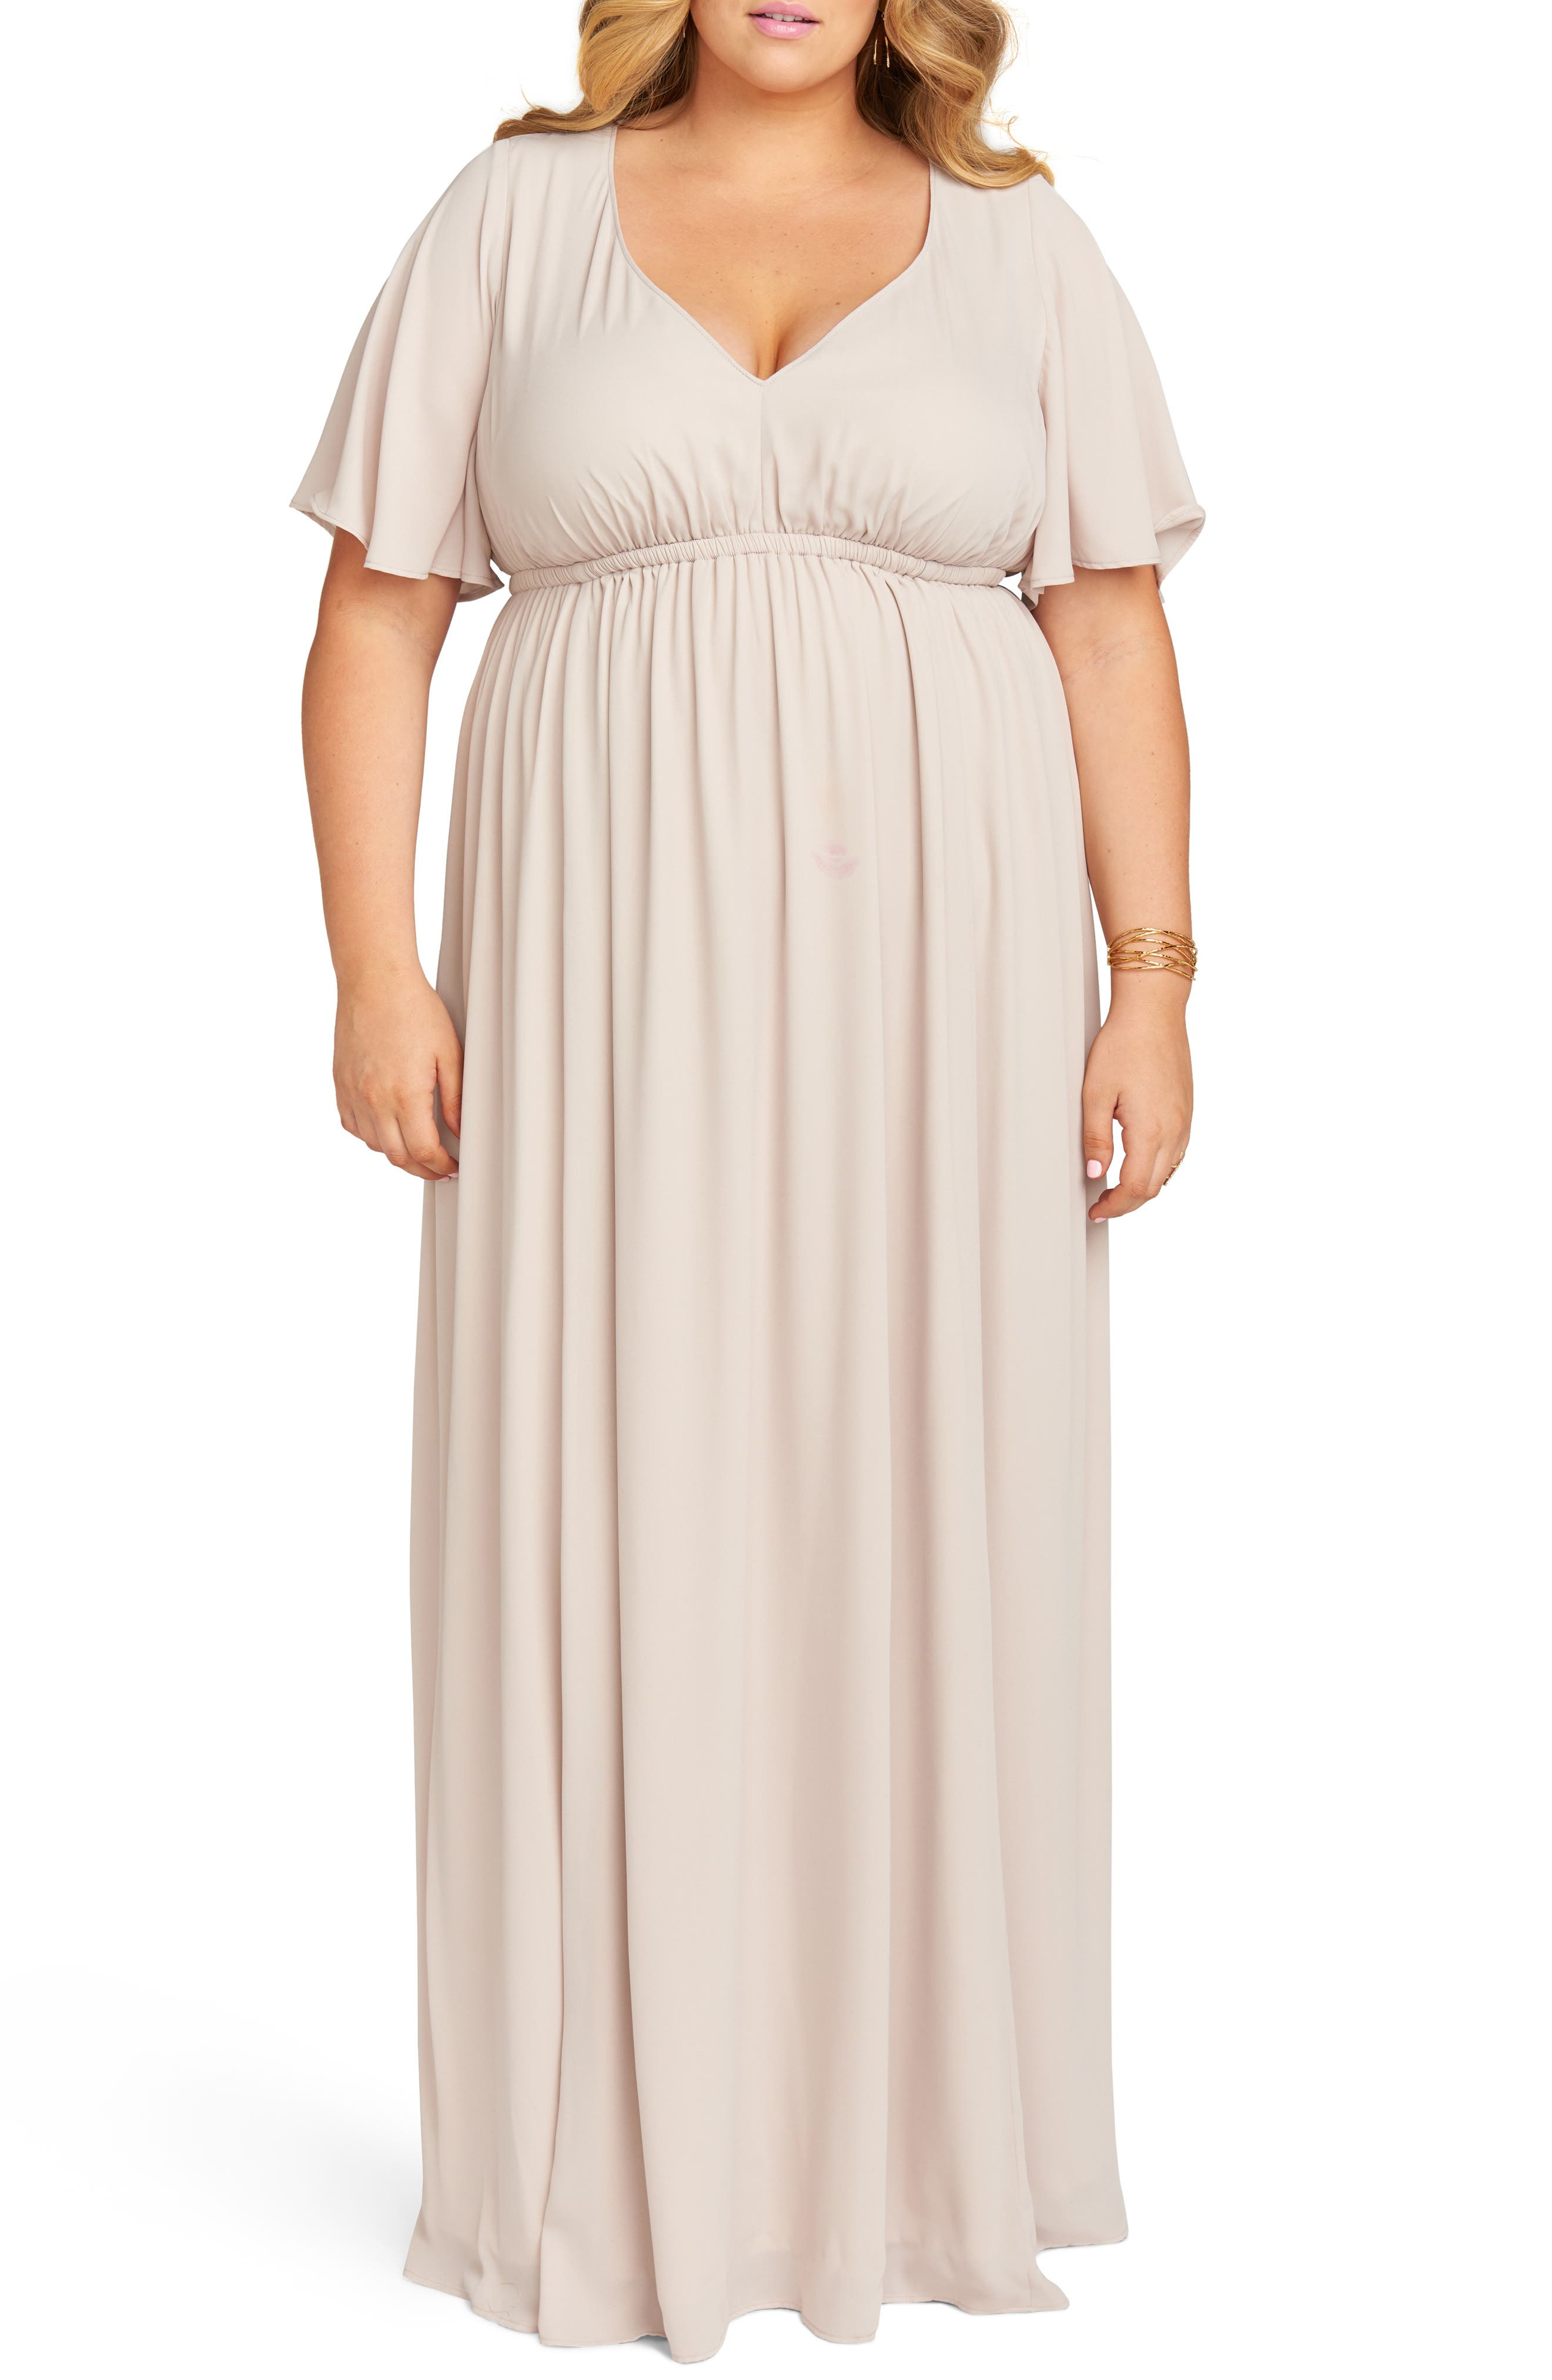 Plus Size Show Me Your Mumu Emily Evening Dress, Beige